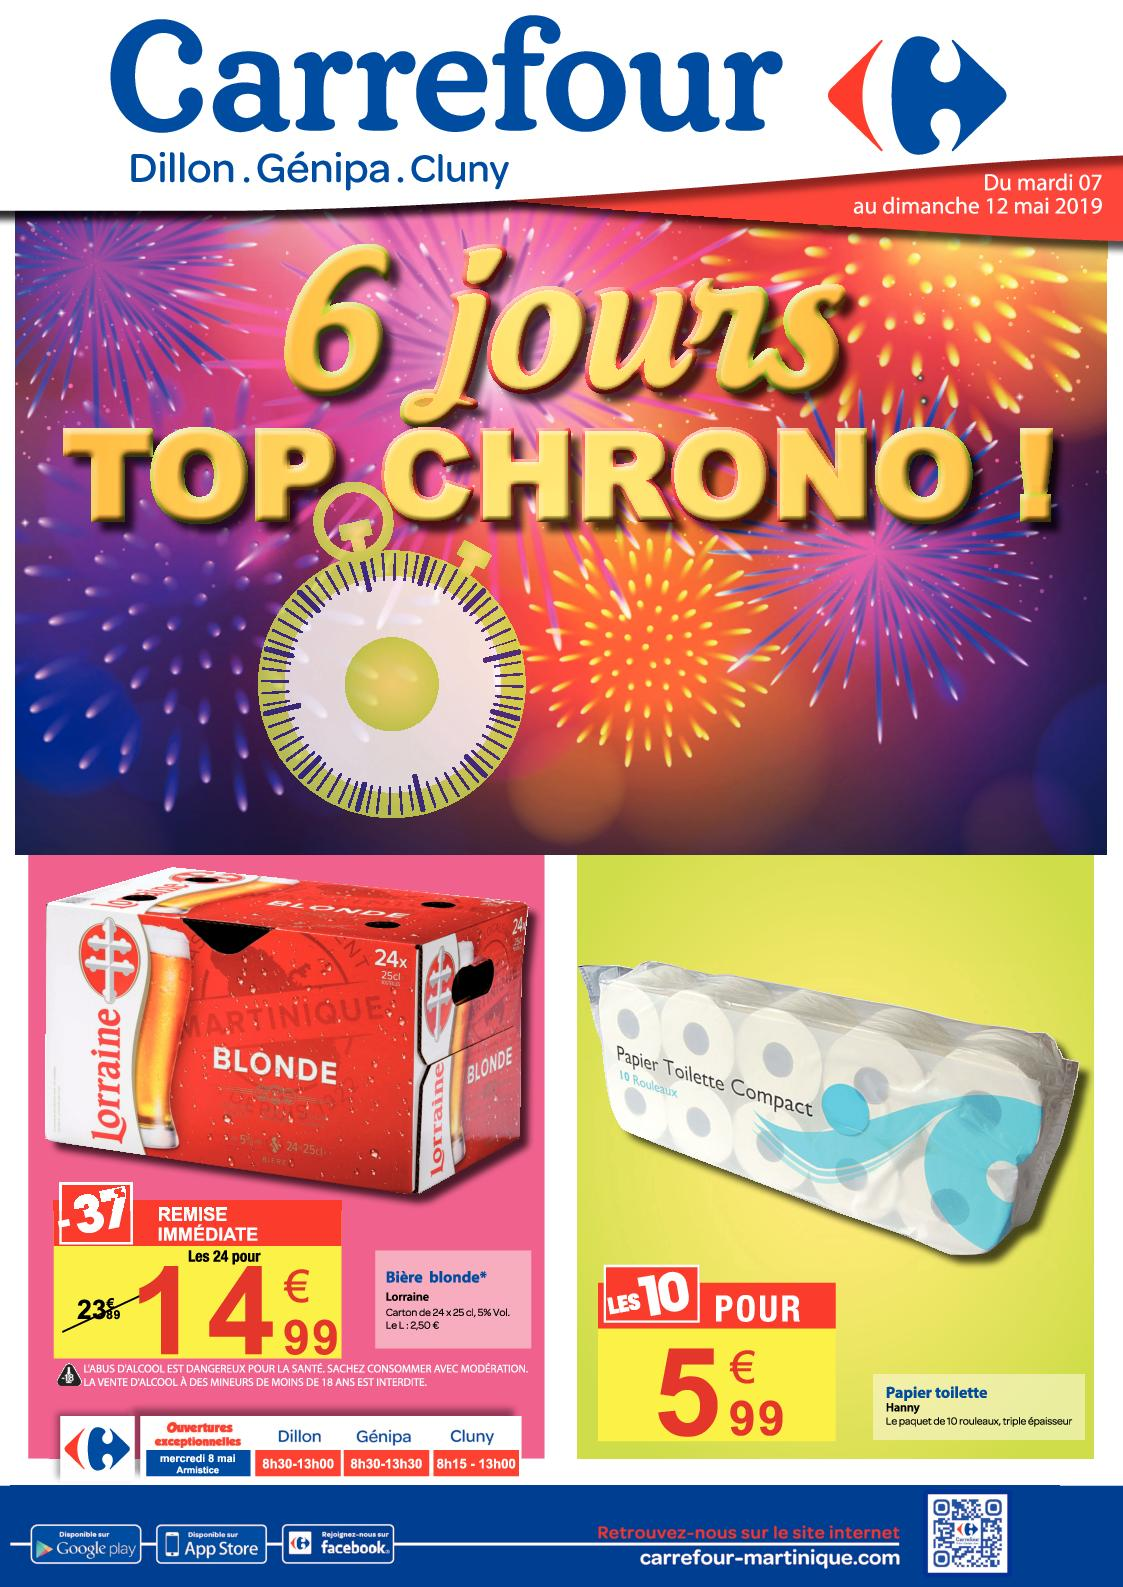 CARREFOUR: 6 JOURS TOP CHRONO!